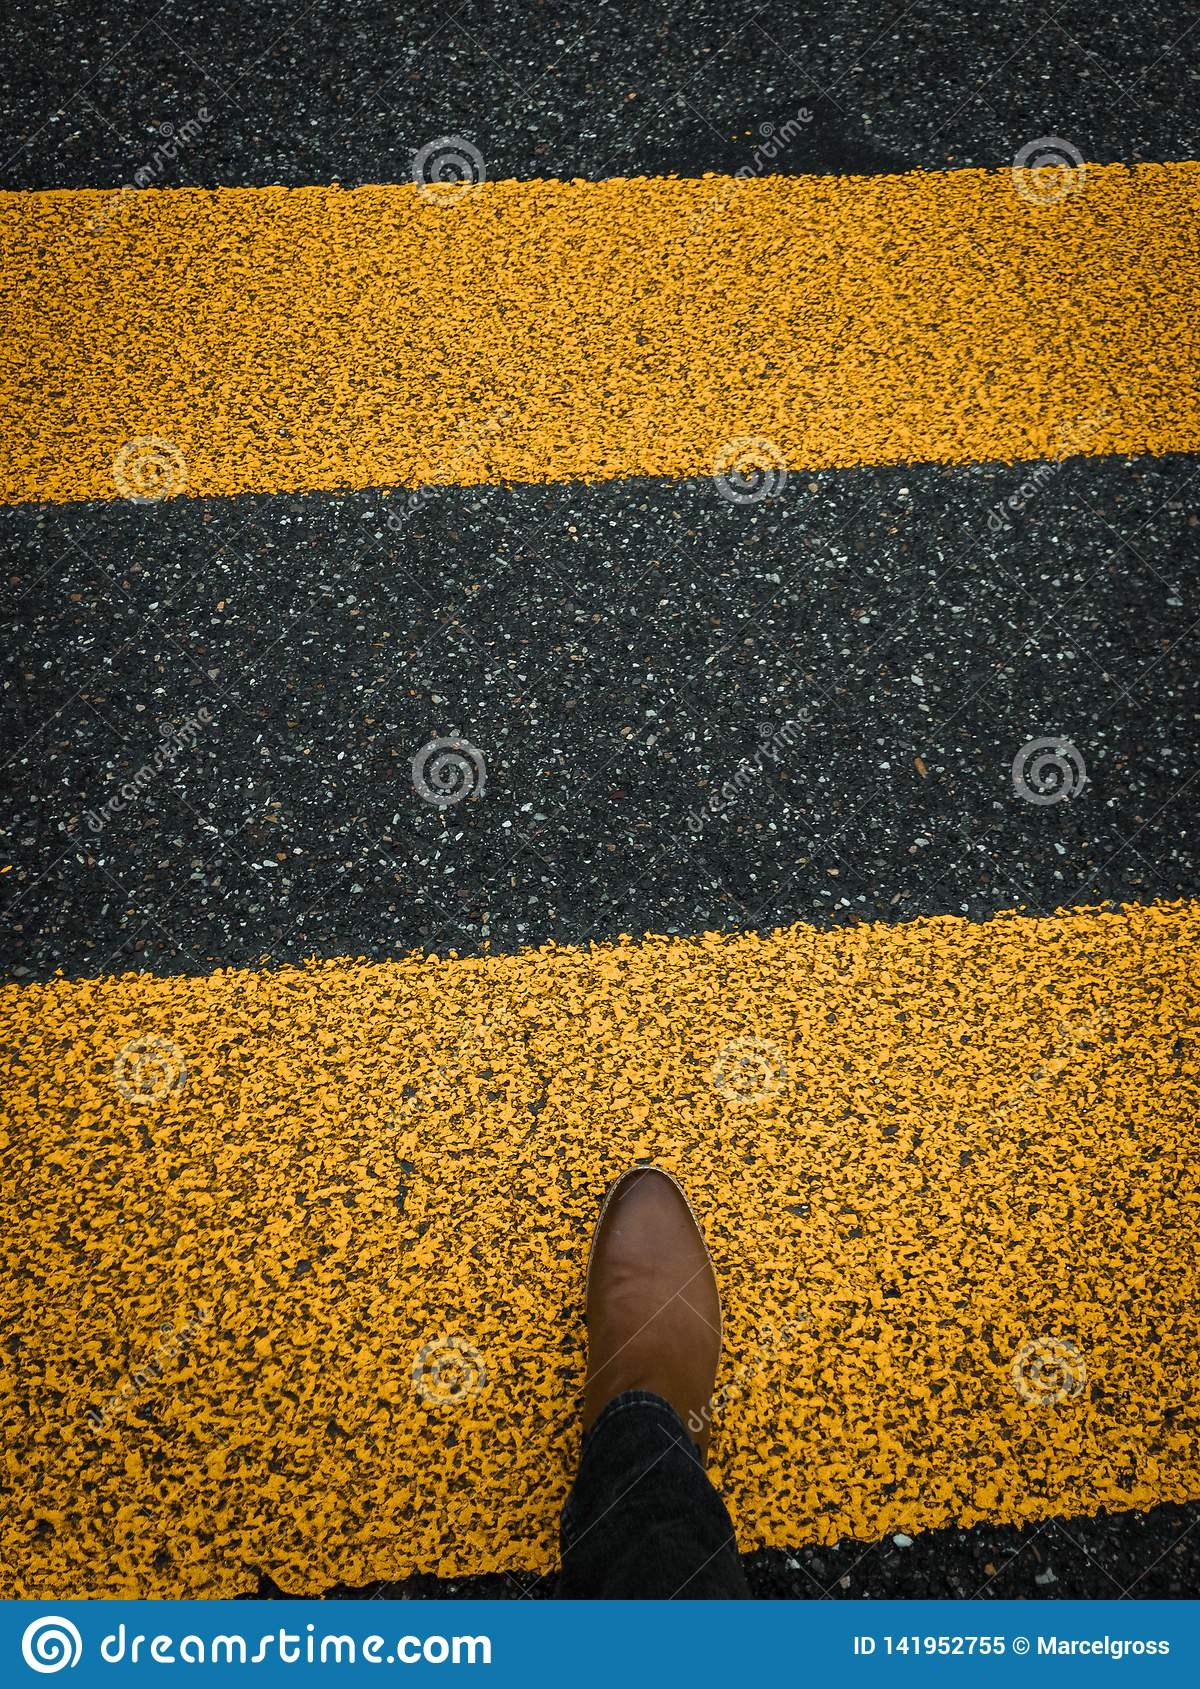 Pedestrian sign on pavement with brown leather boot